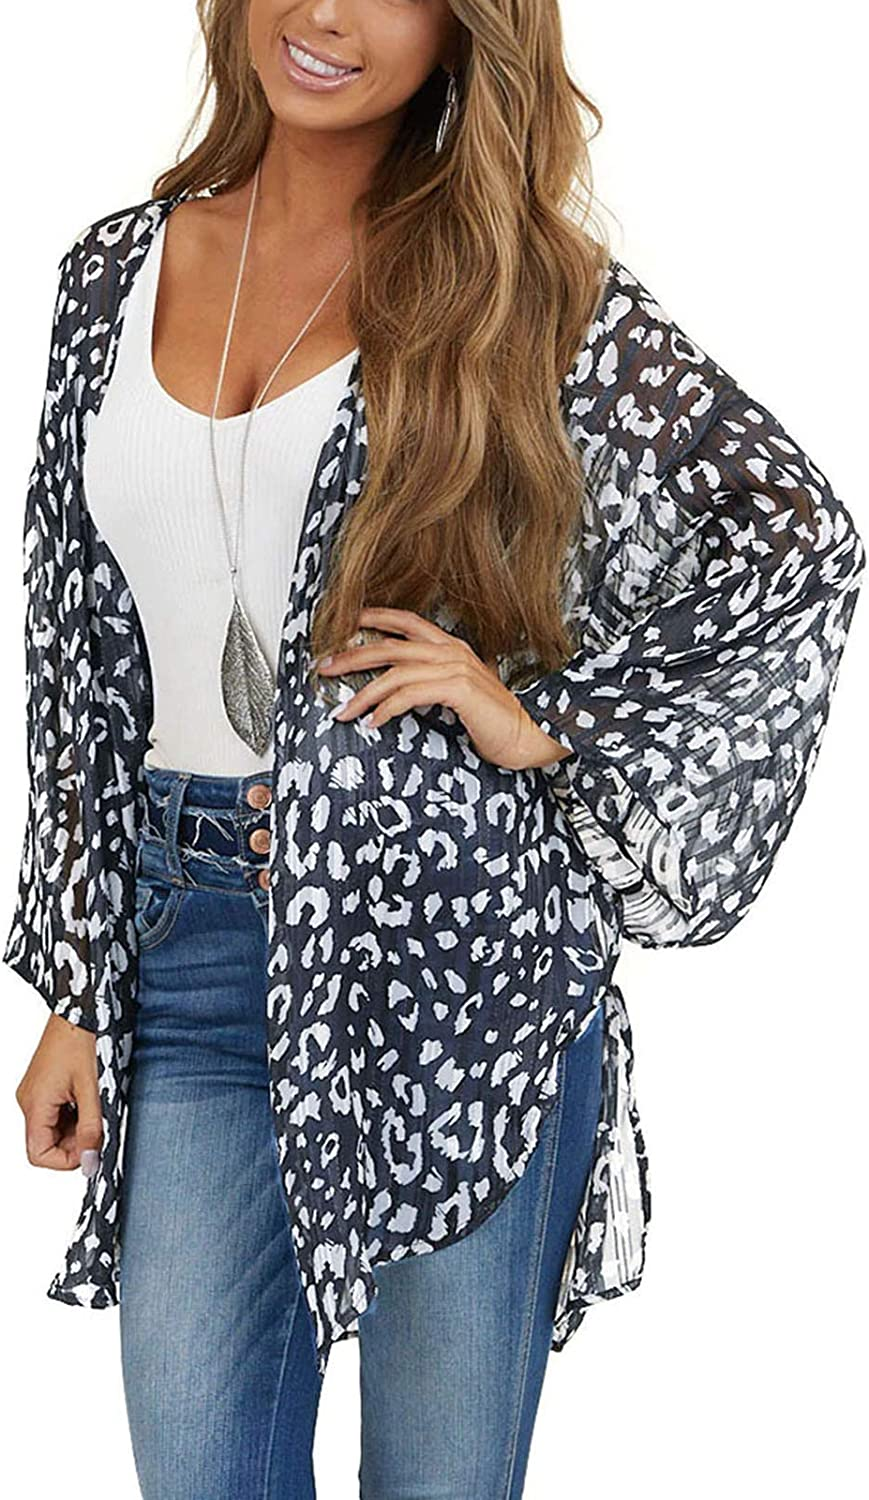 Blouse and Tops Shirt for Women, Women Tops Fashion Printing Cardigan Swimsuit Beach Cover-Up Coat